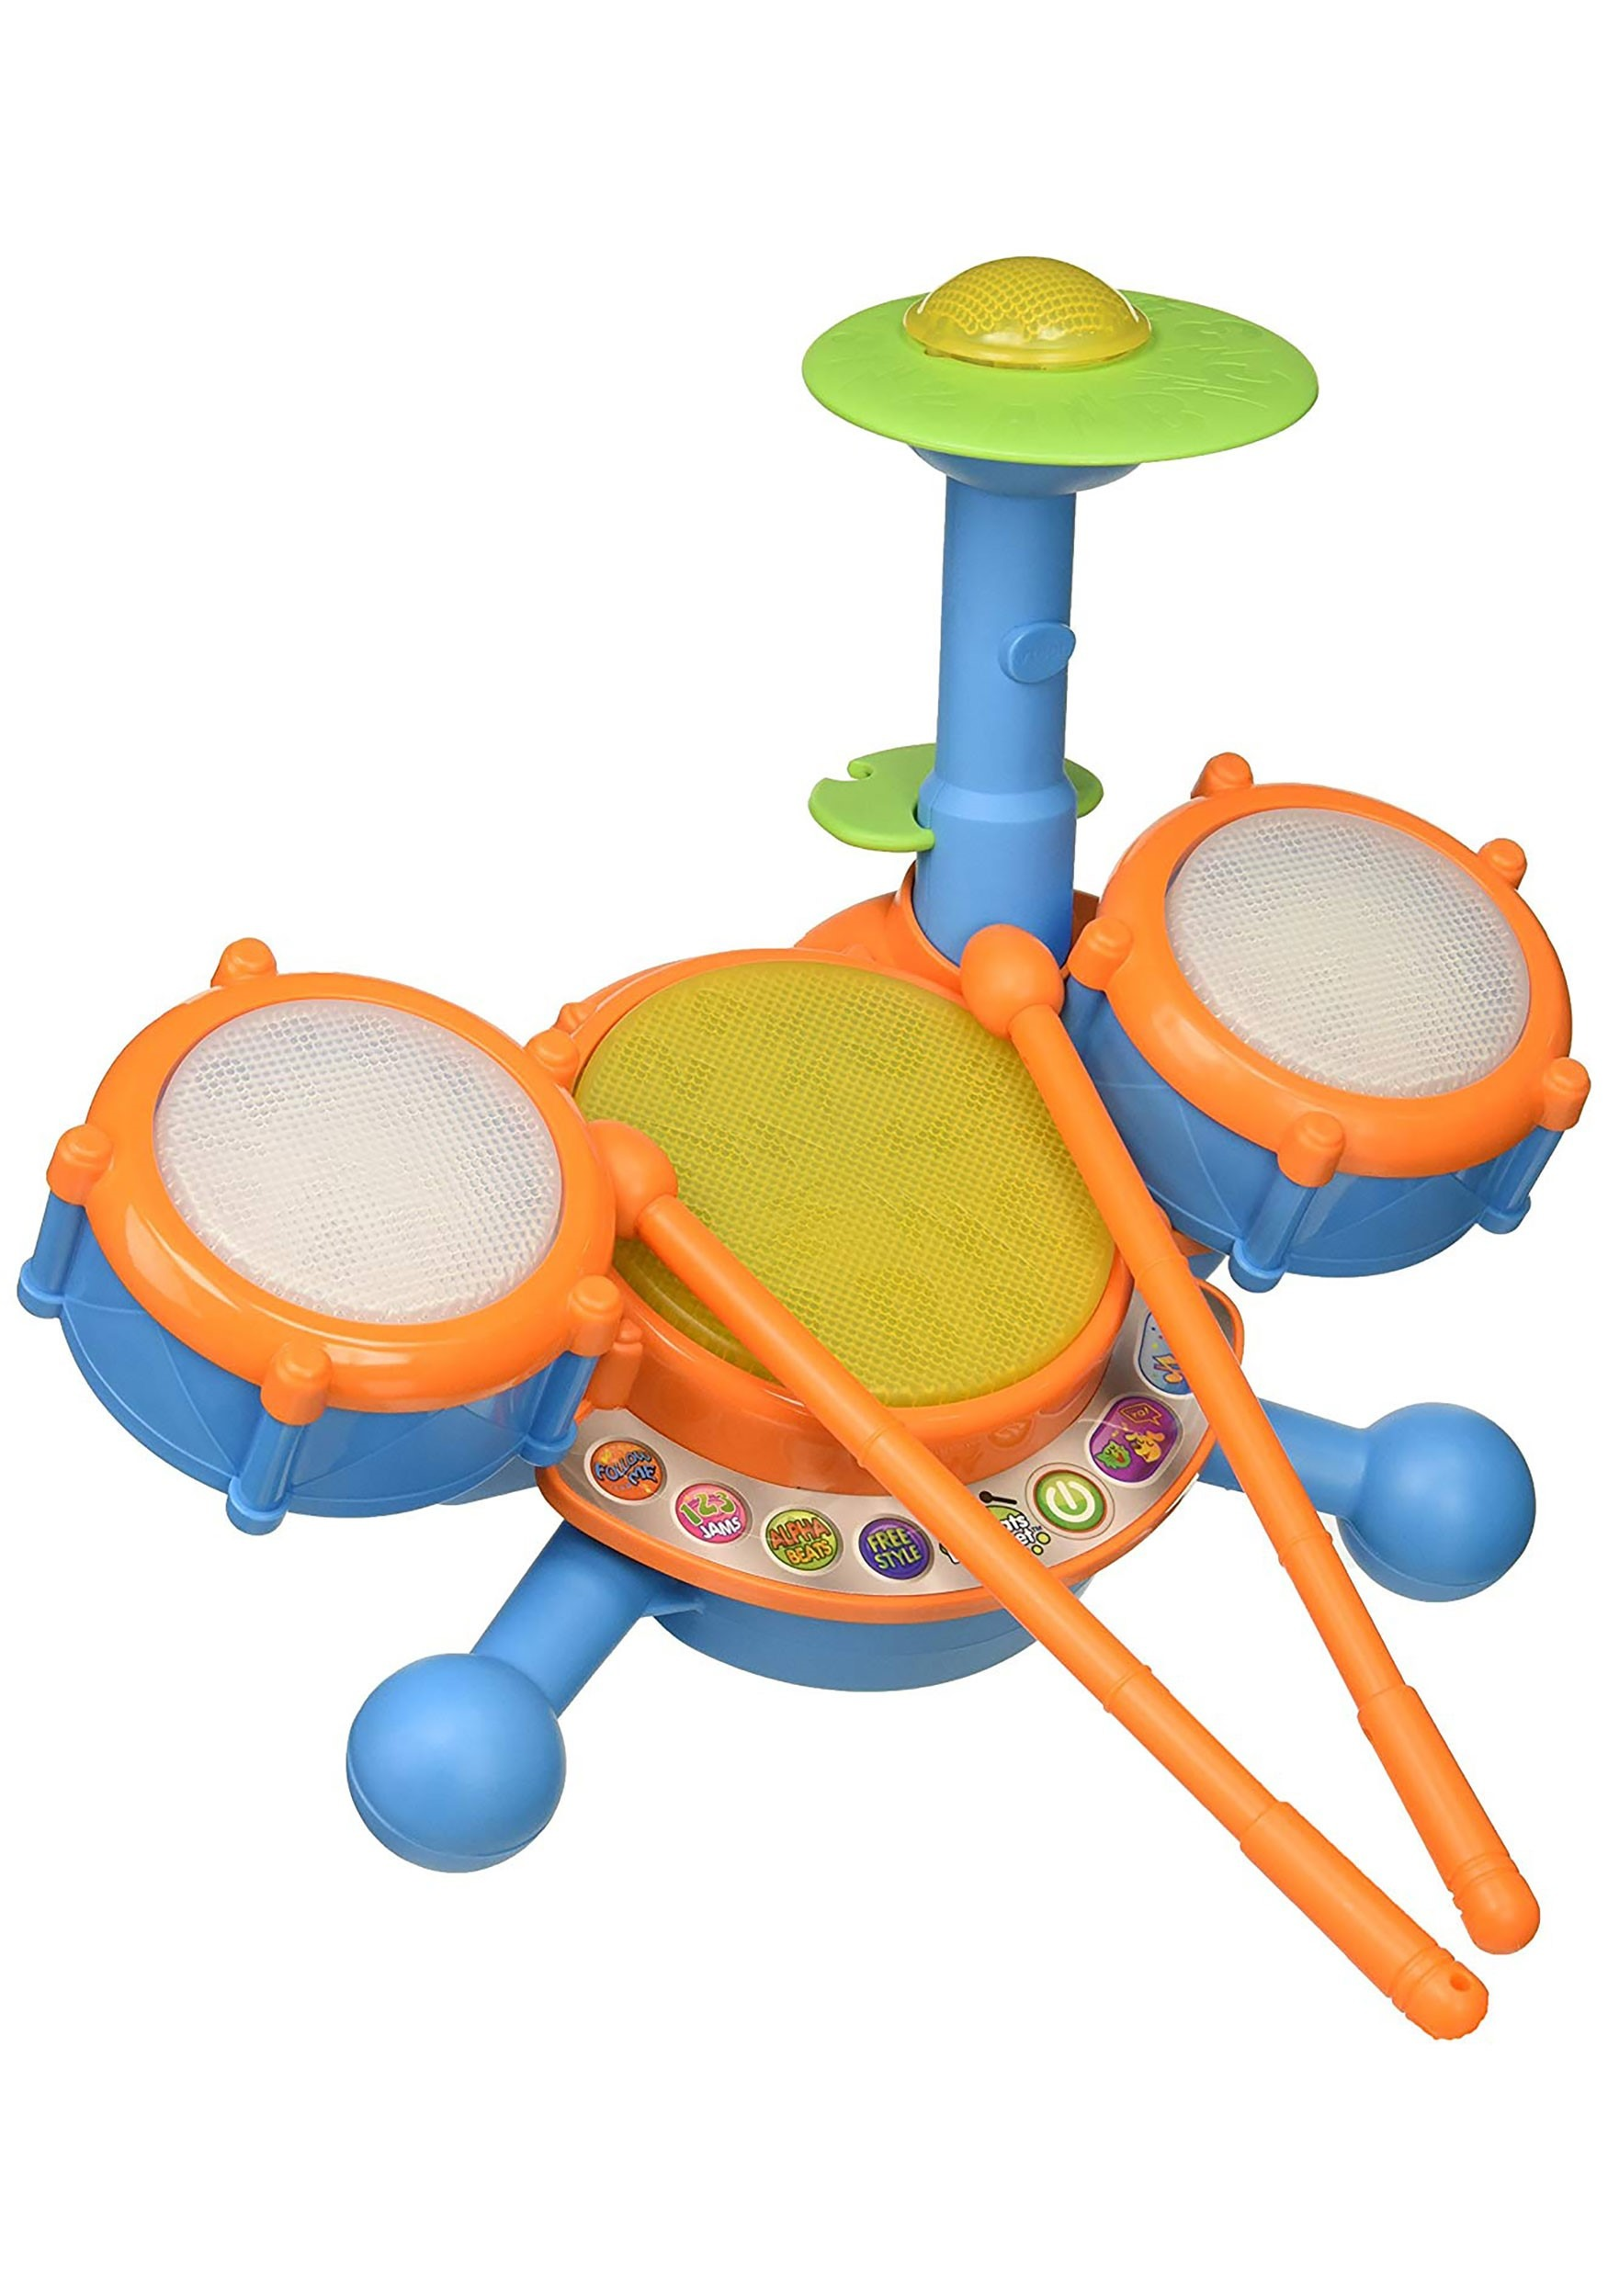 VTech KidiBeats Drum Set for toddlers